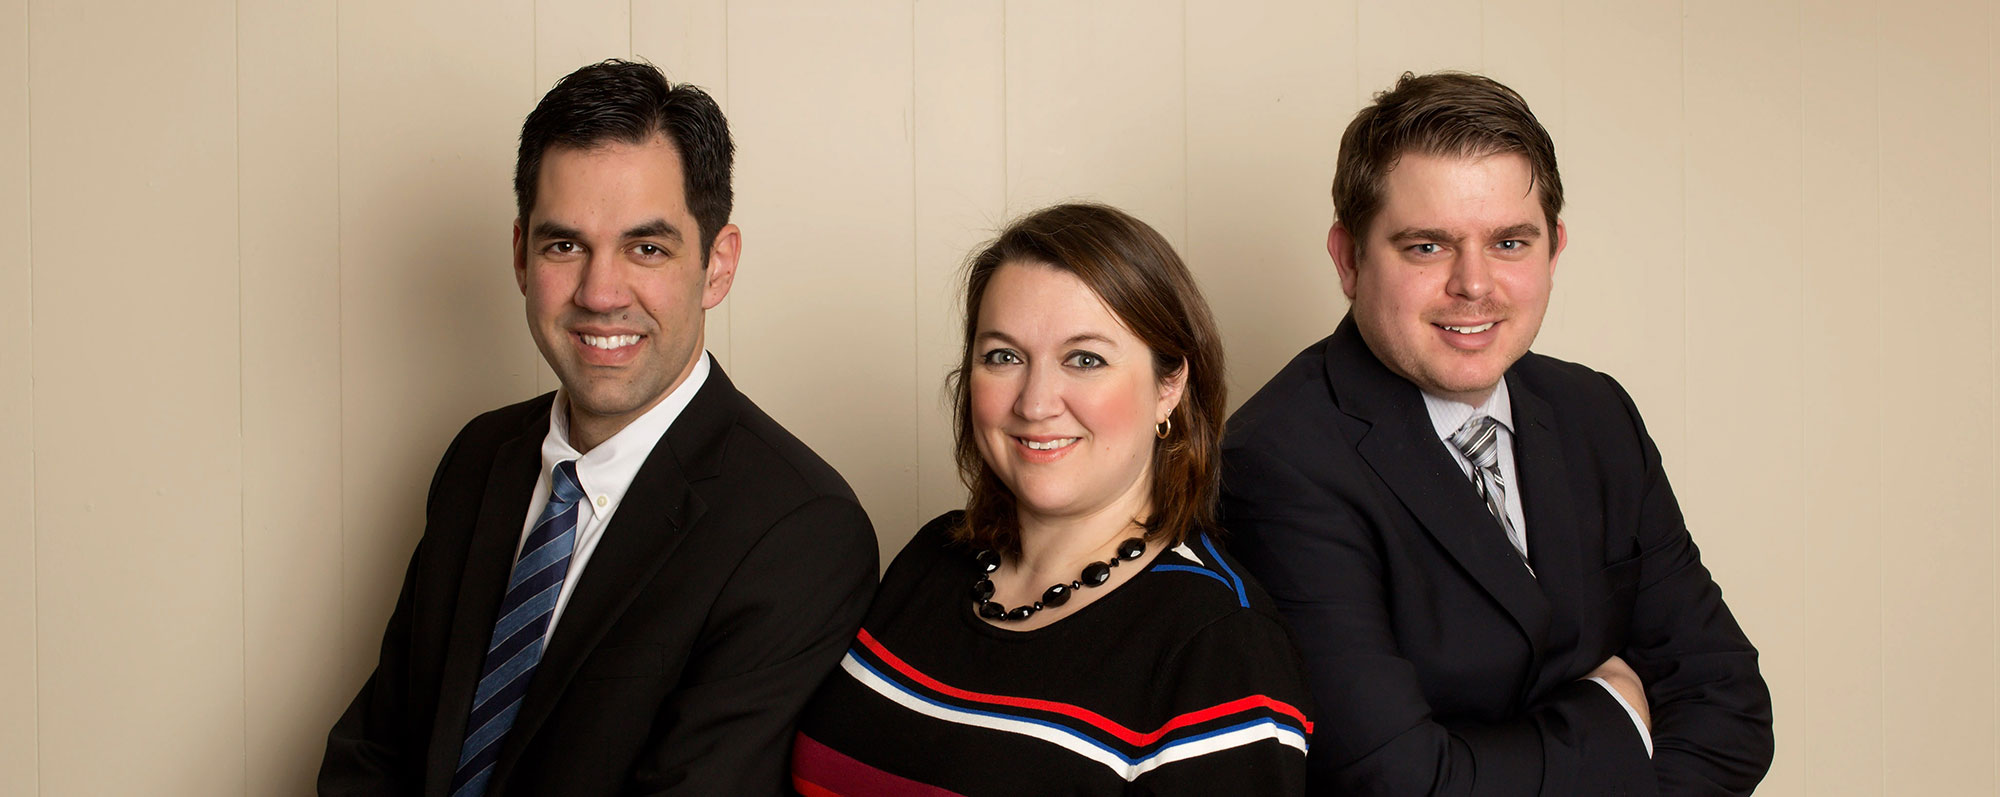 Aaron Eddie, M. Kathleen Kinch and Justin Savoy of Kinch Eddie Litigation